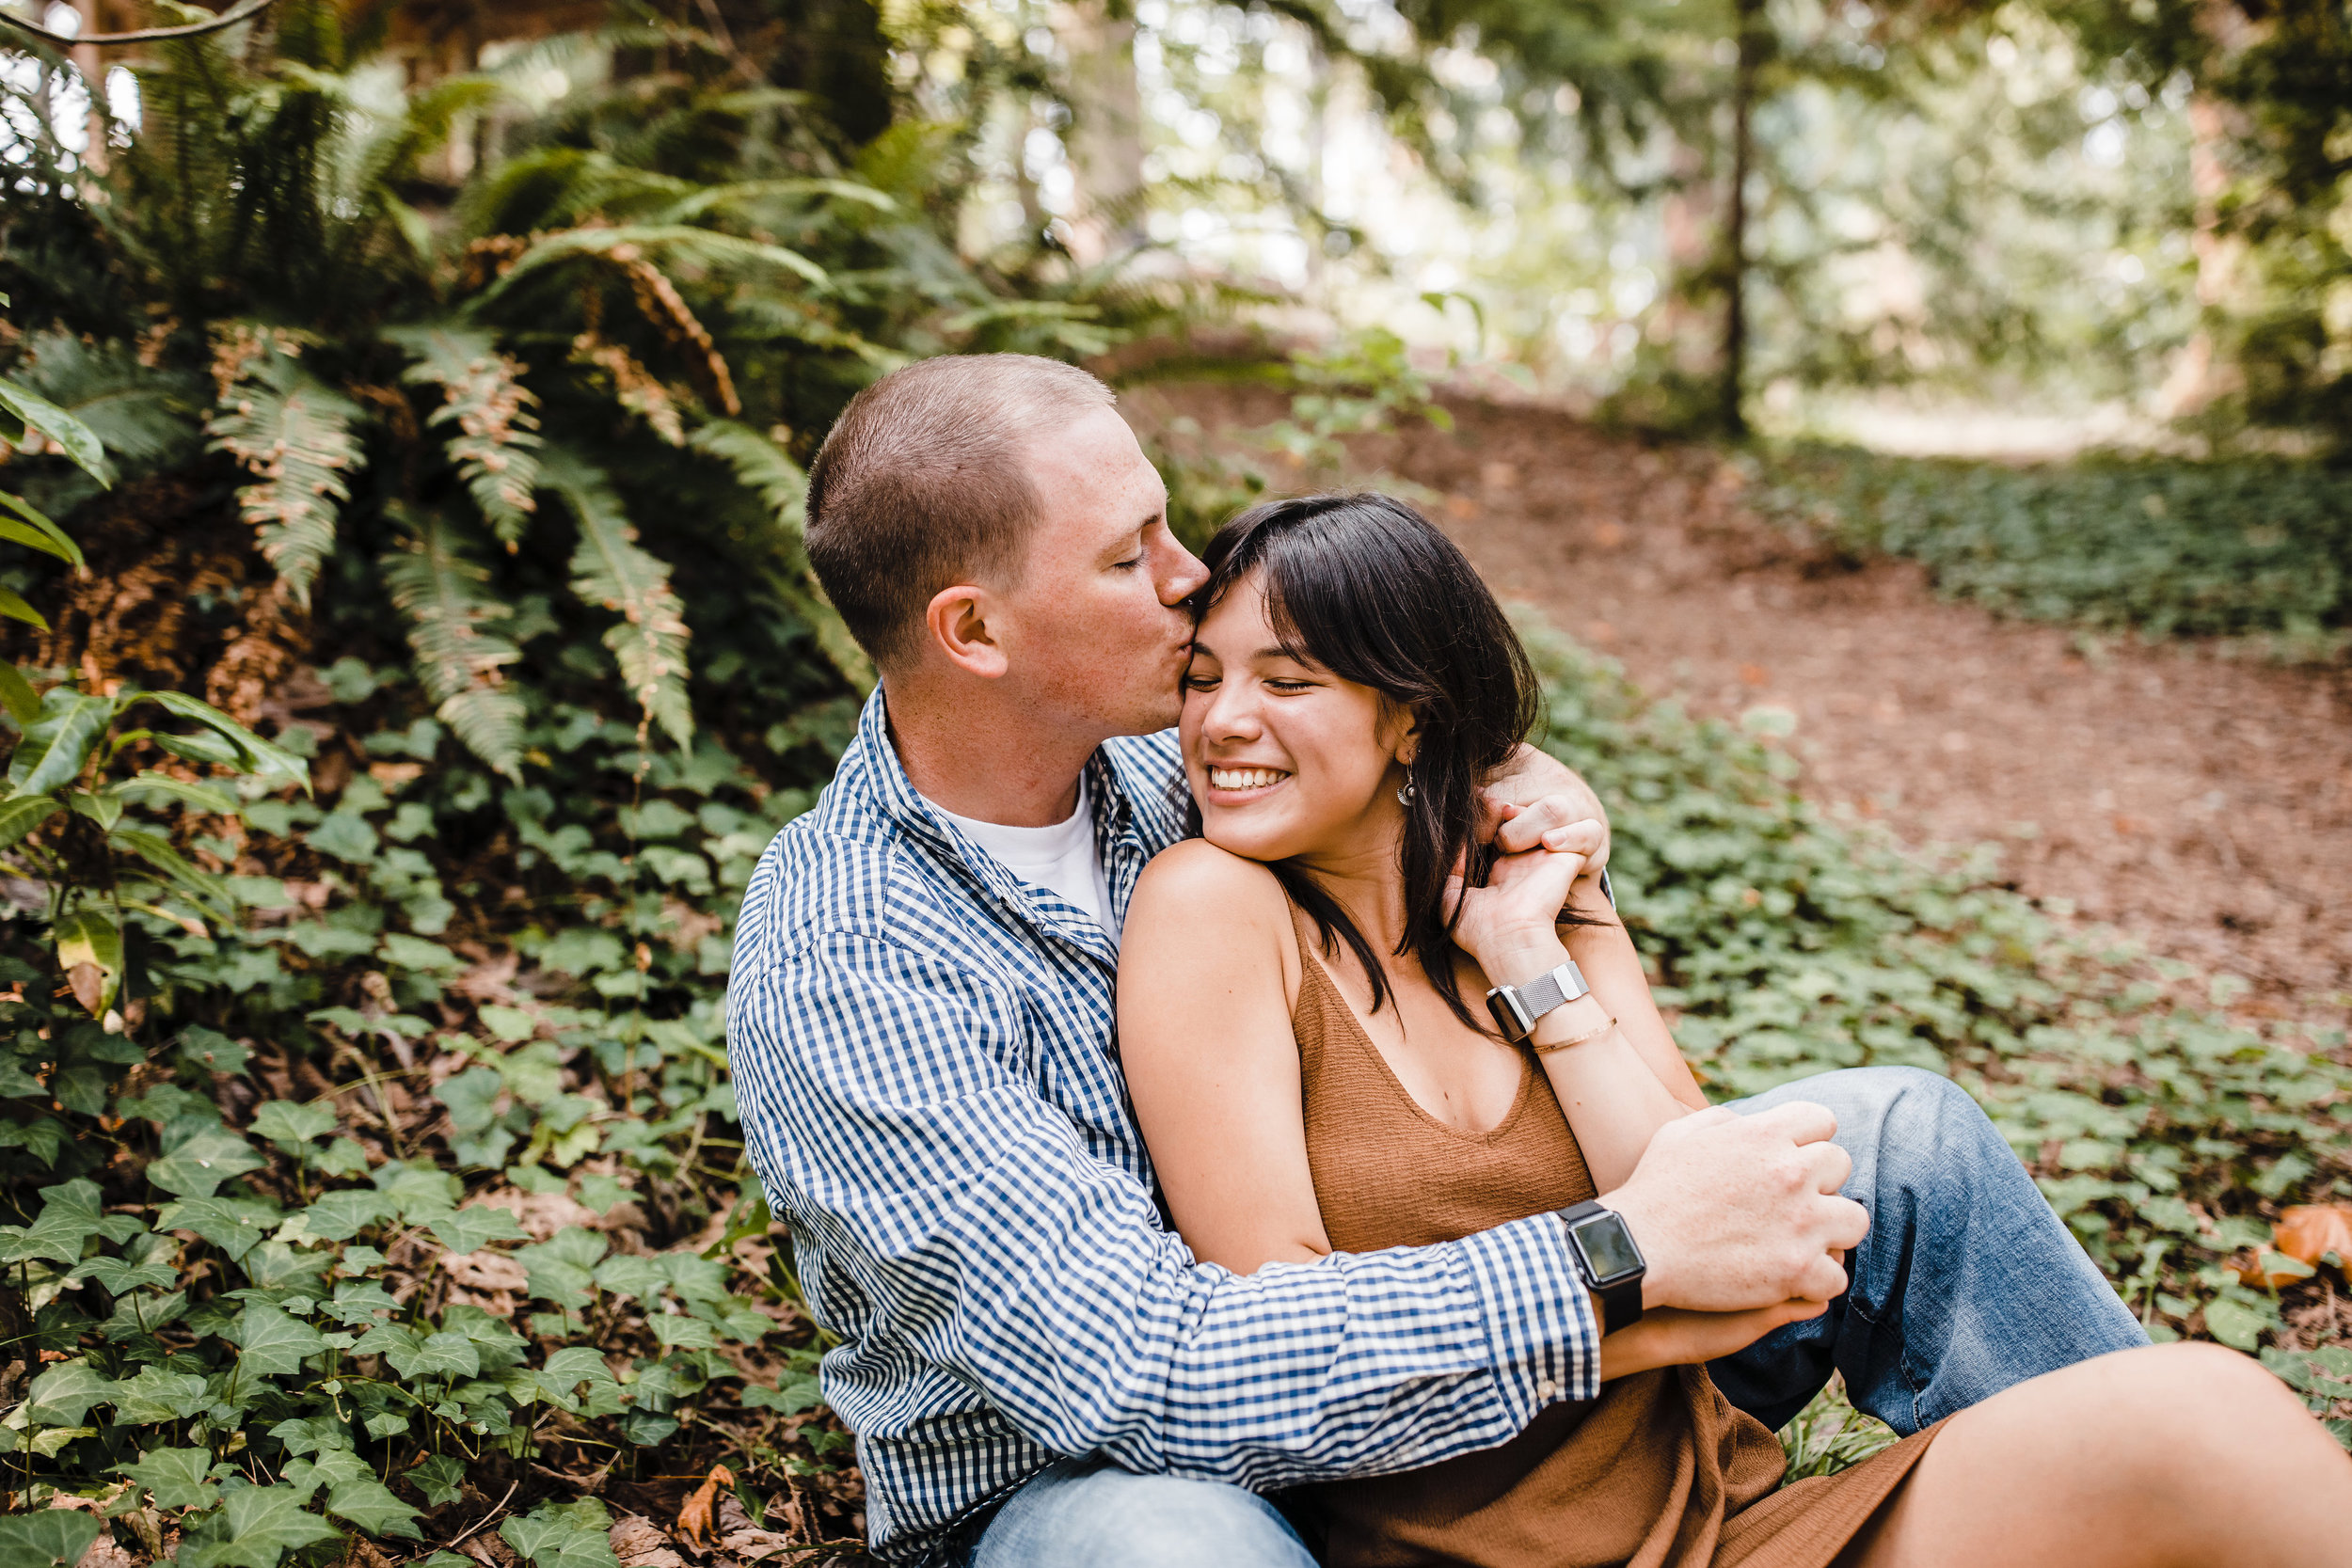 professional engagement photographer in olympia washington sitting cuddling smiling